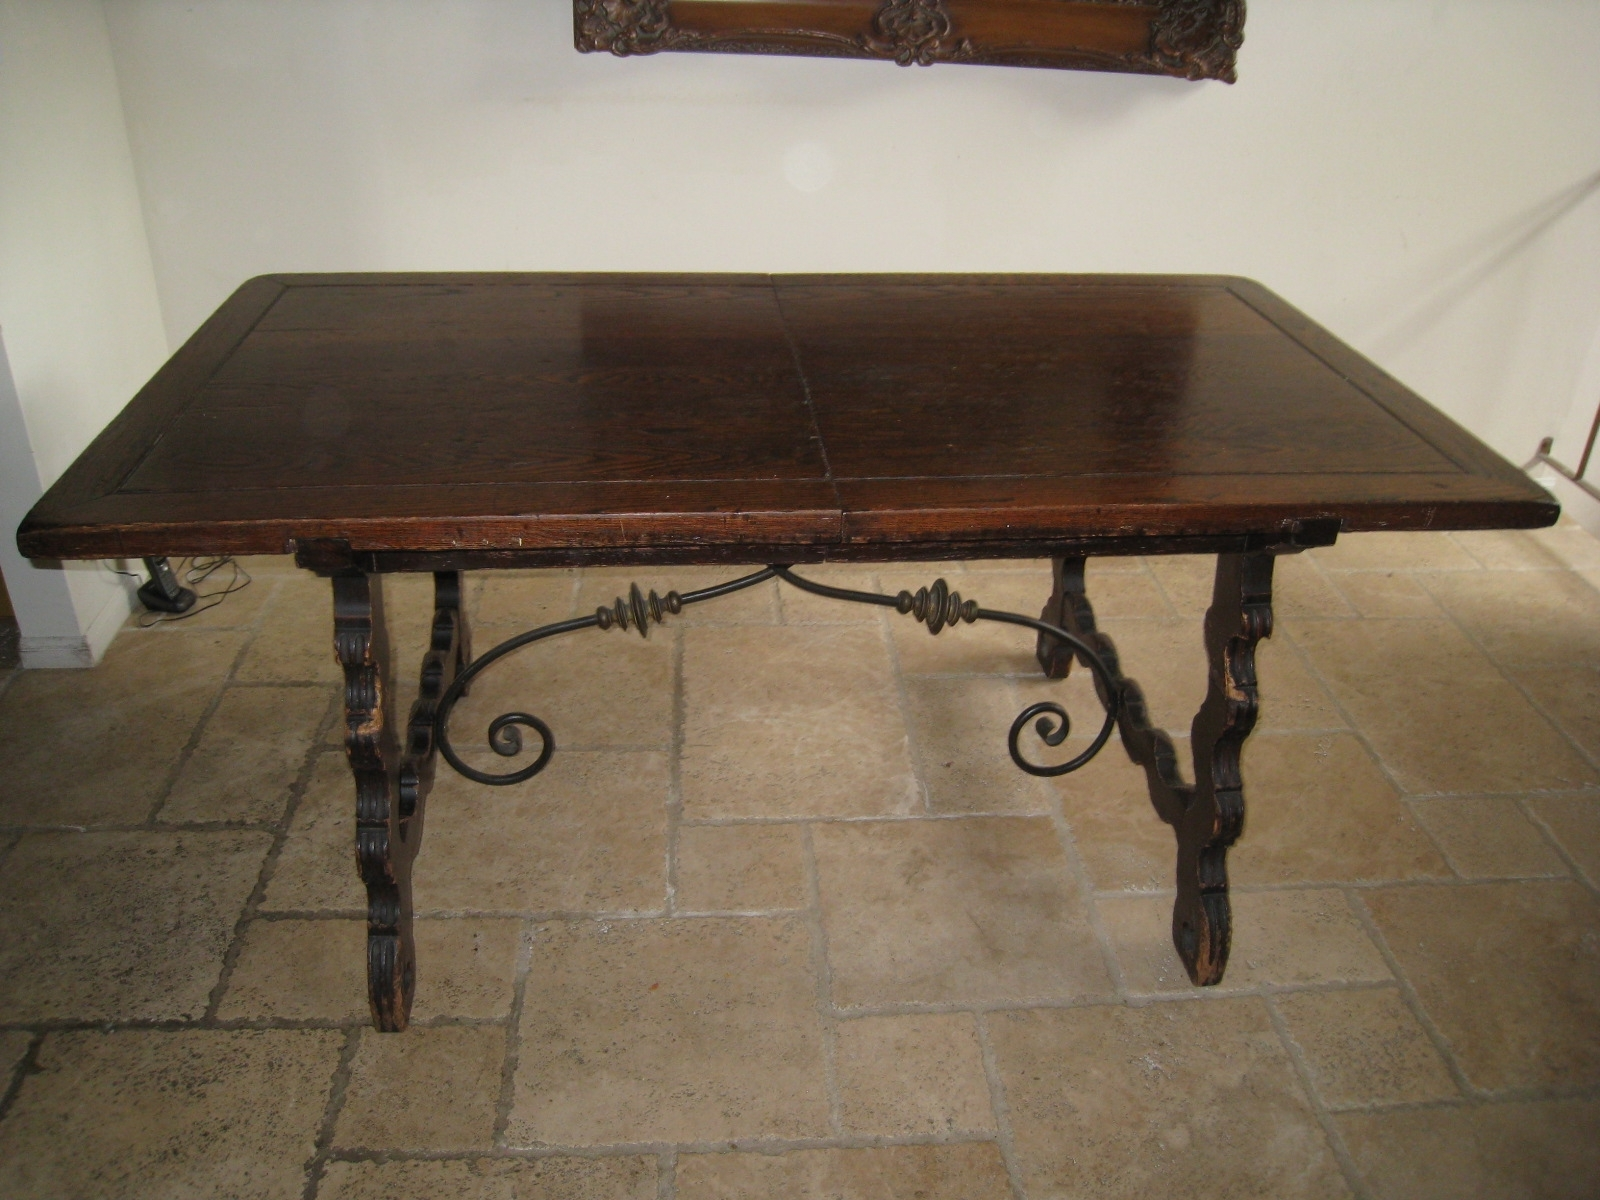 Exquisite 1920's Dining Table With 6 Chairs « Fantastic Liquidation For Newest Iron And Wood Dining Tables (View 18 of 20)